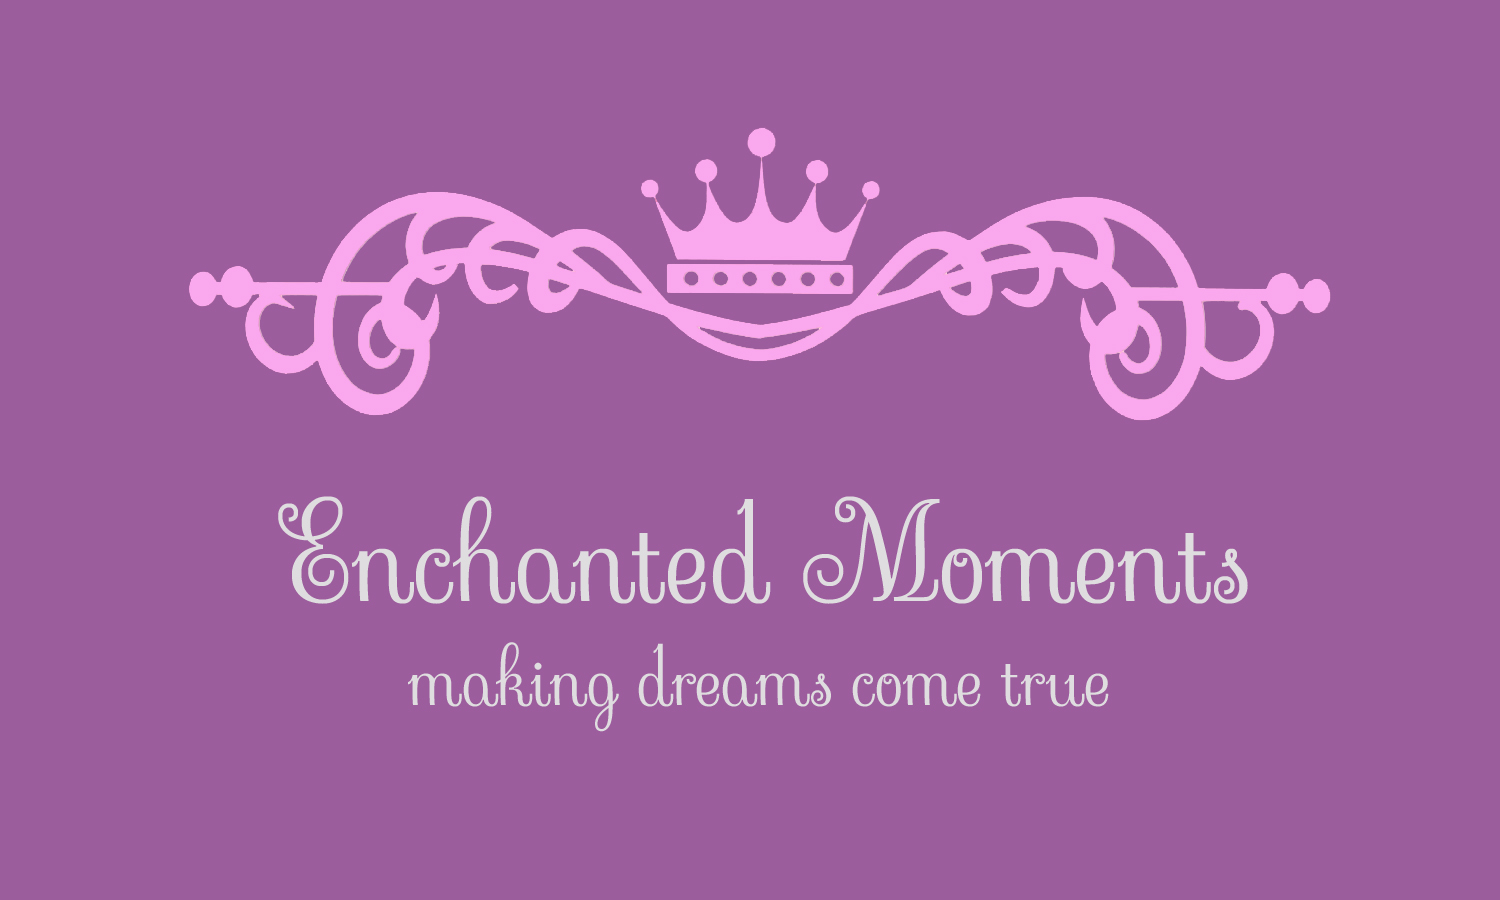 Enchanted Moments